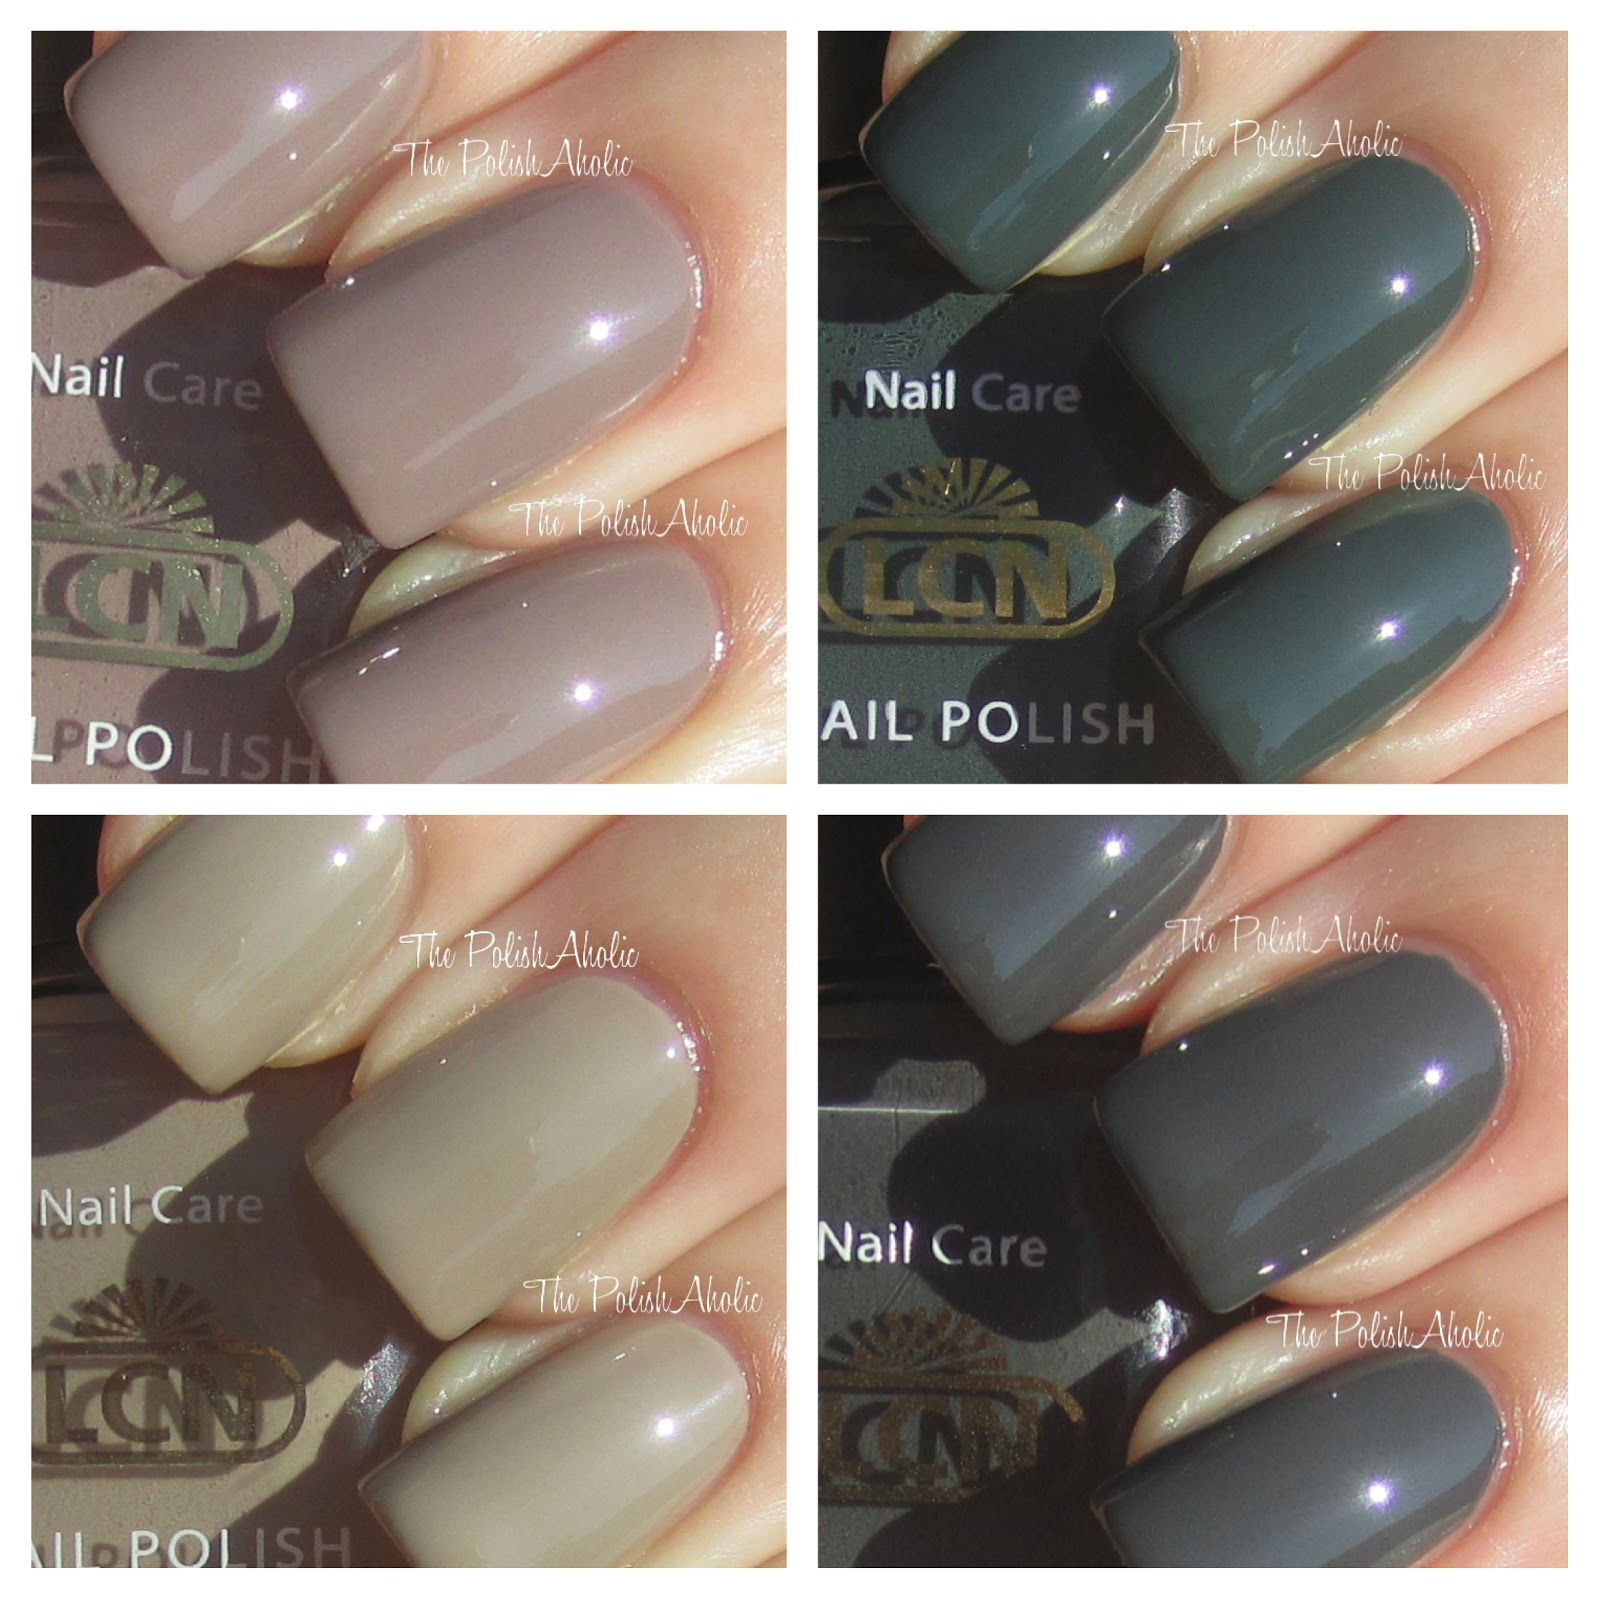 The PolishAholic: LCN Fall 2012 Urban Expression Collection Swatches